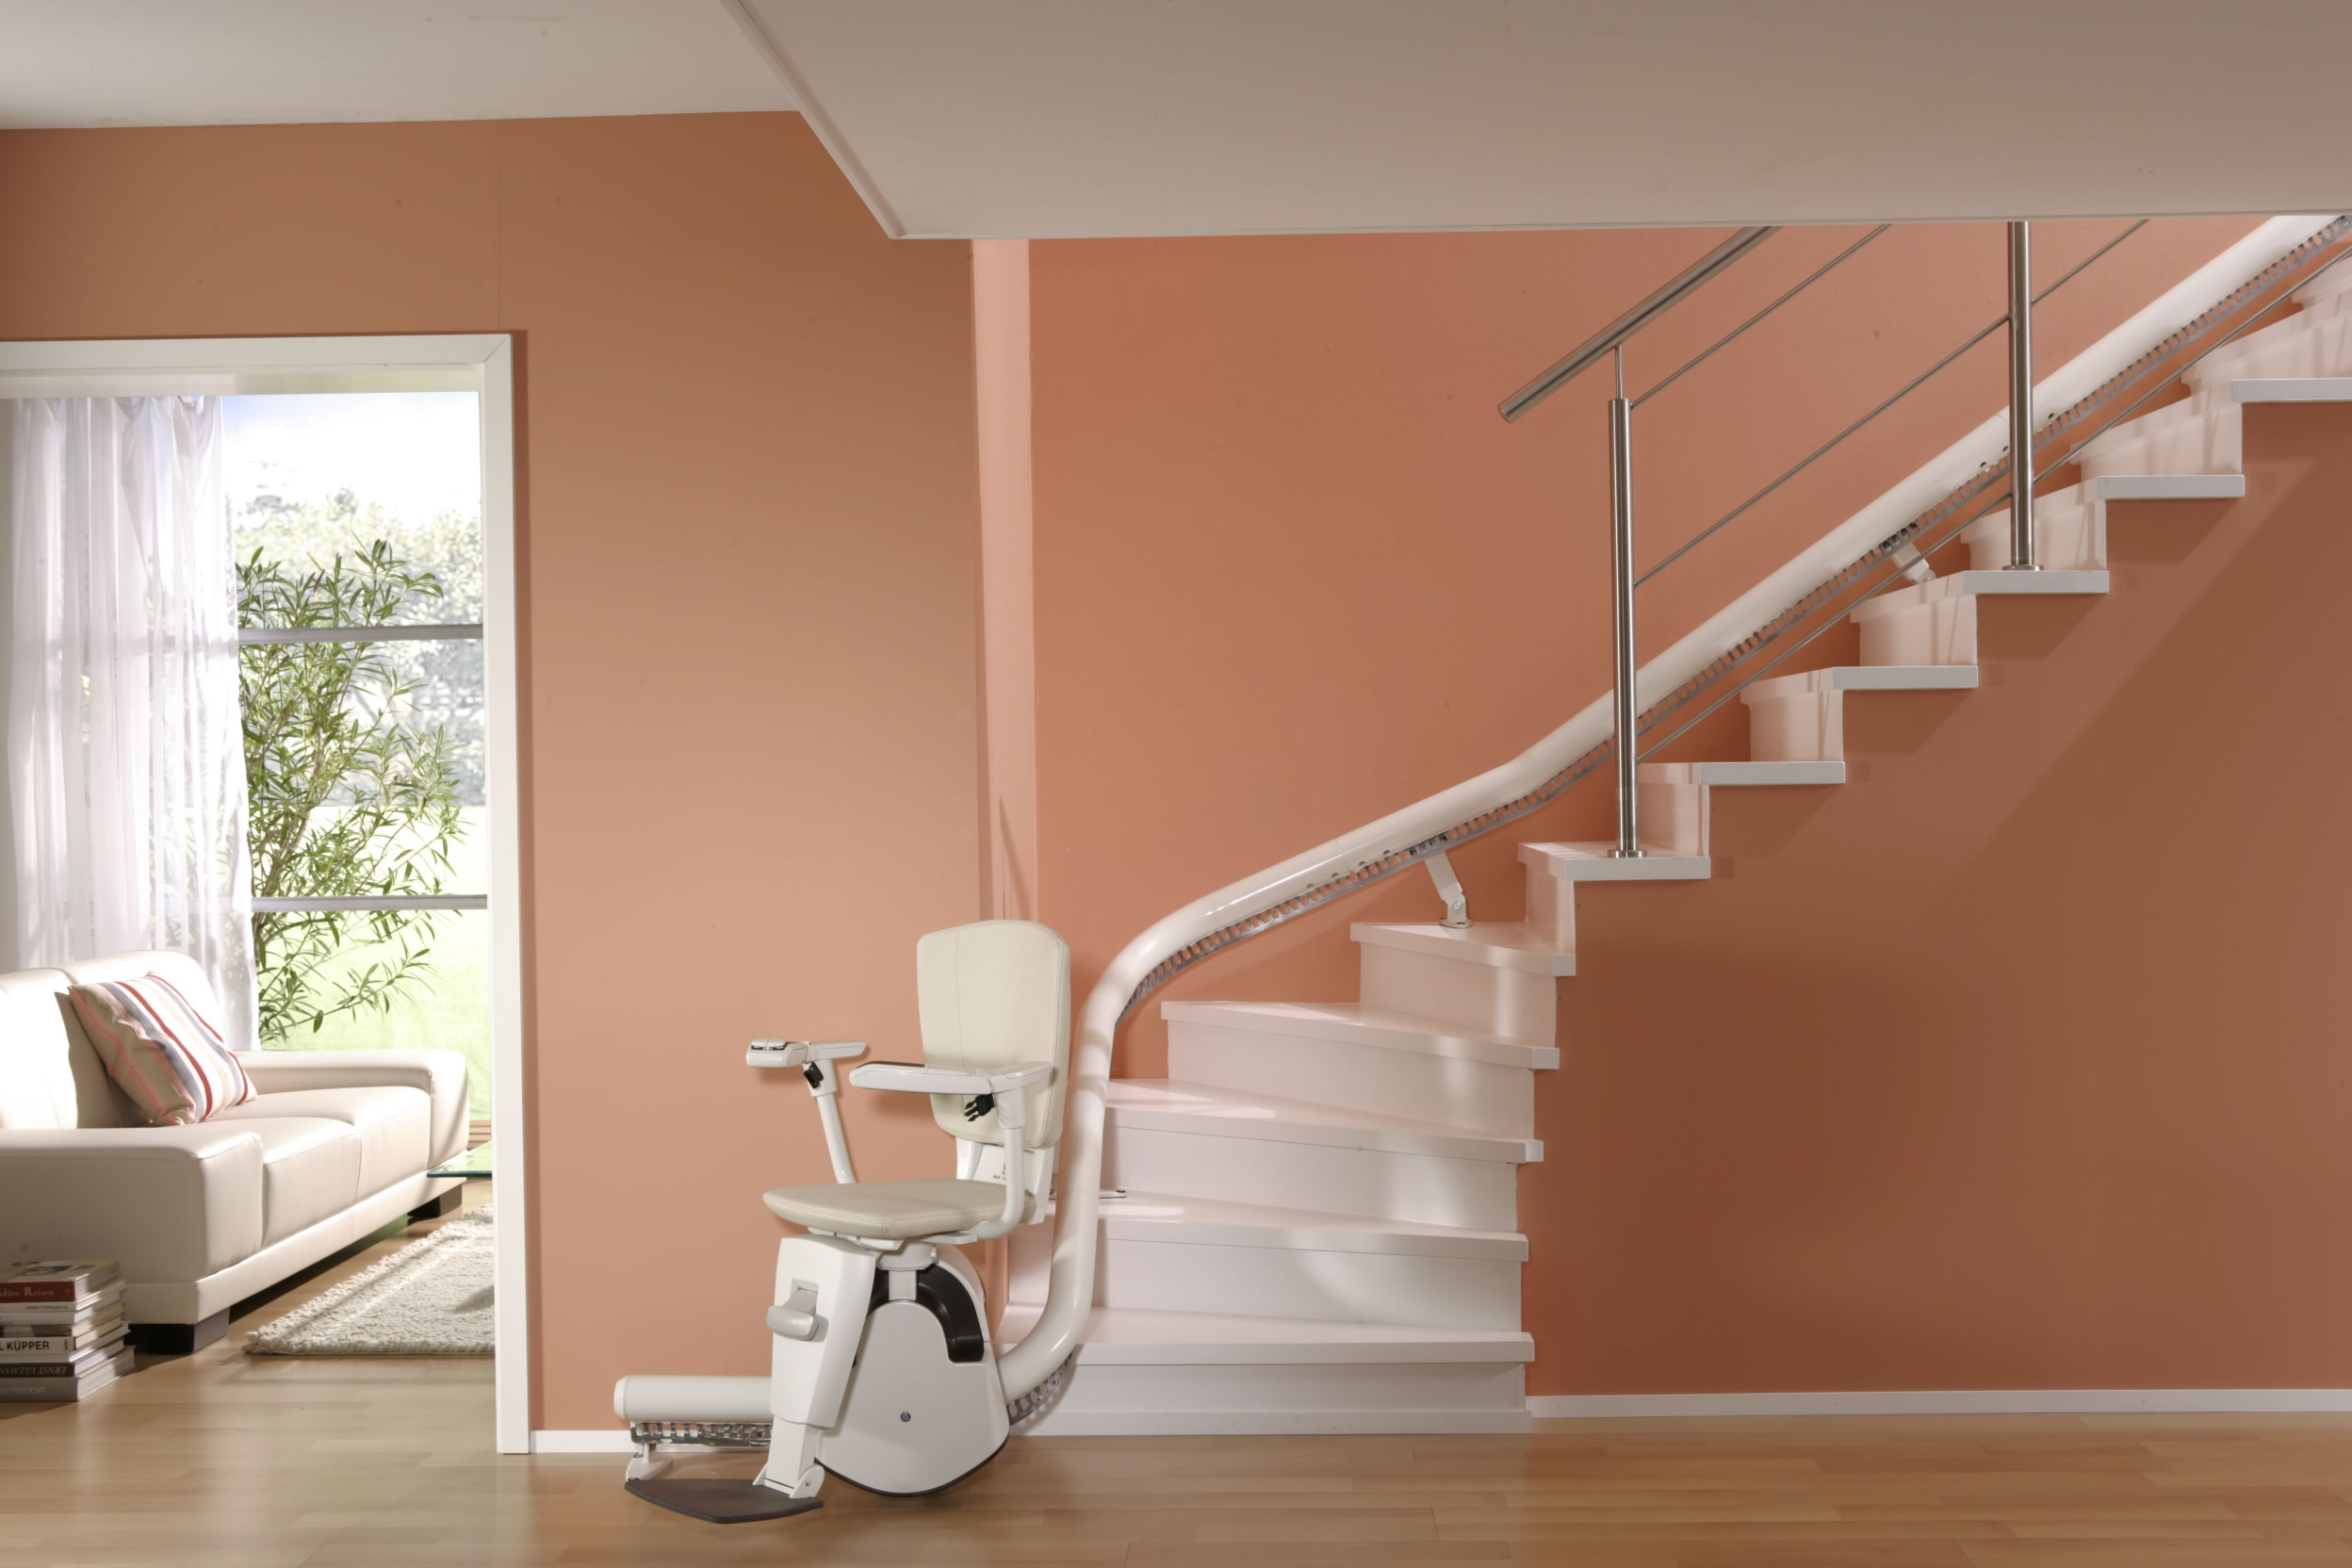 stair chair lift and medicare stair lift for stairs with landing chair